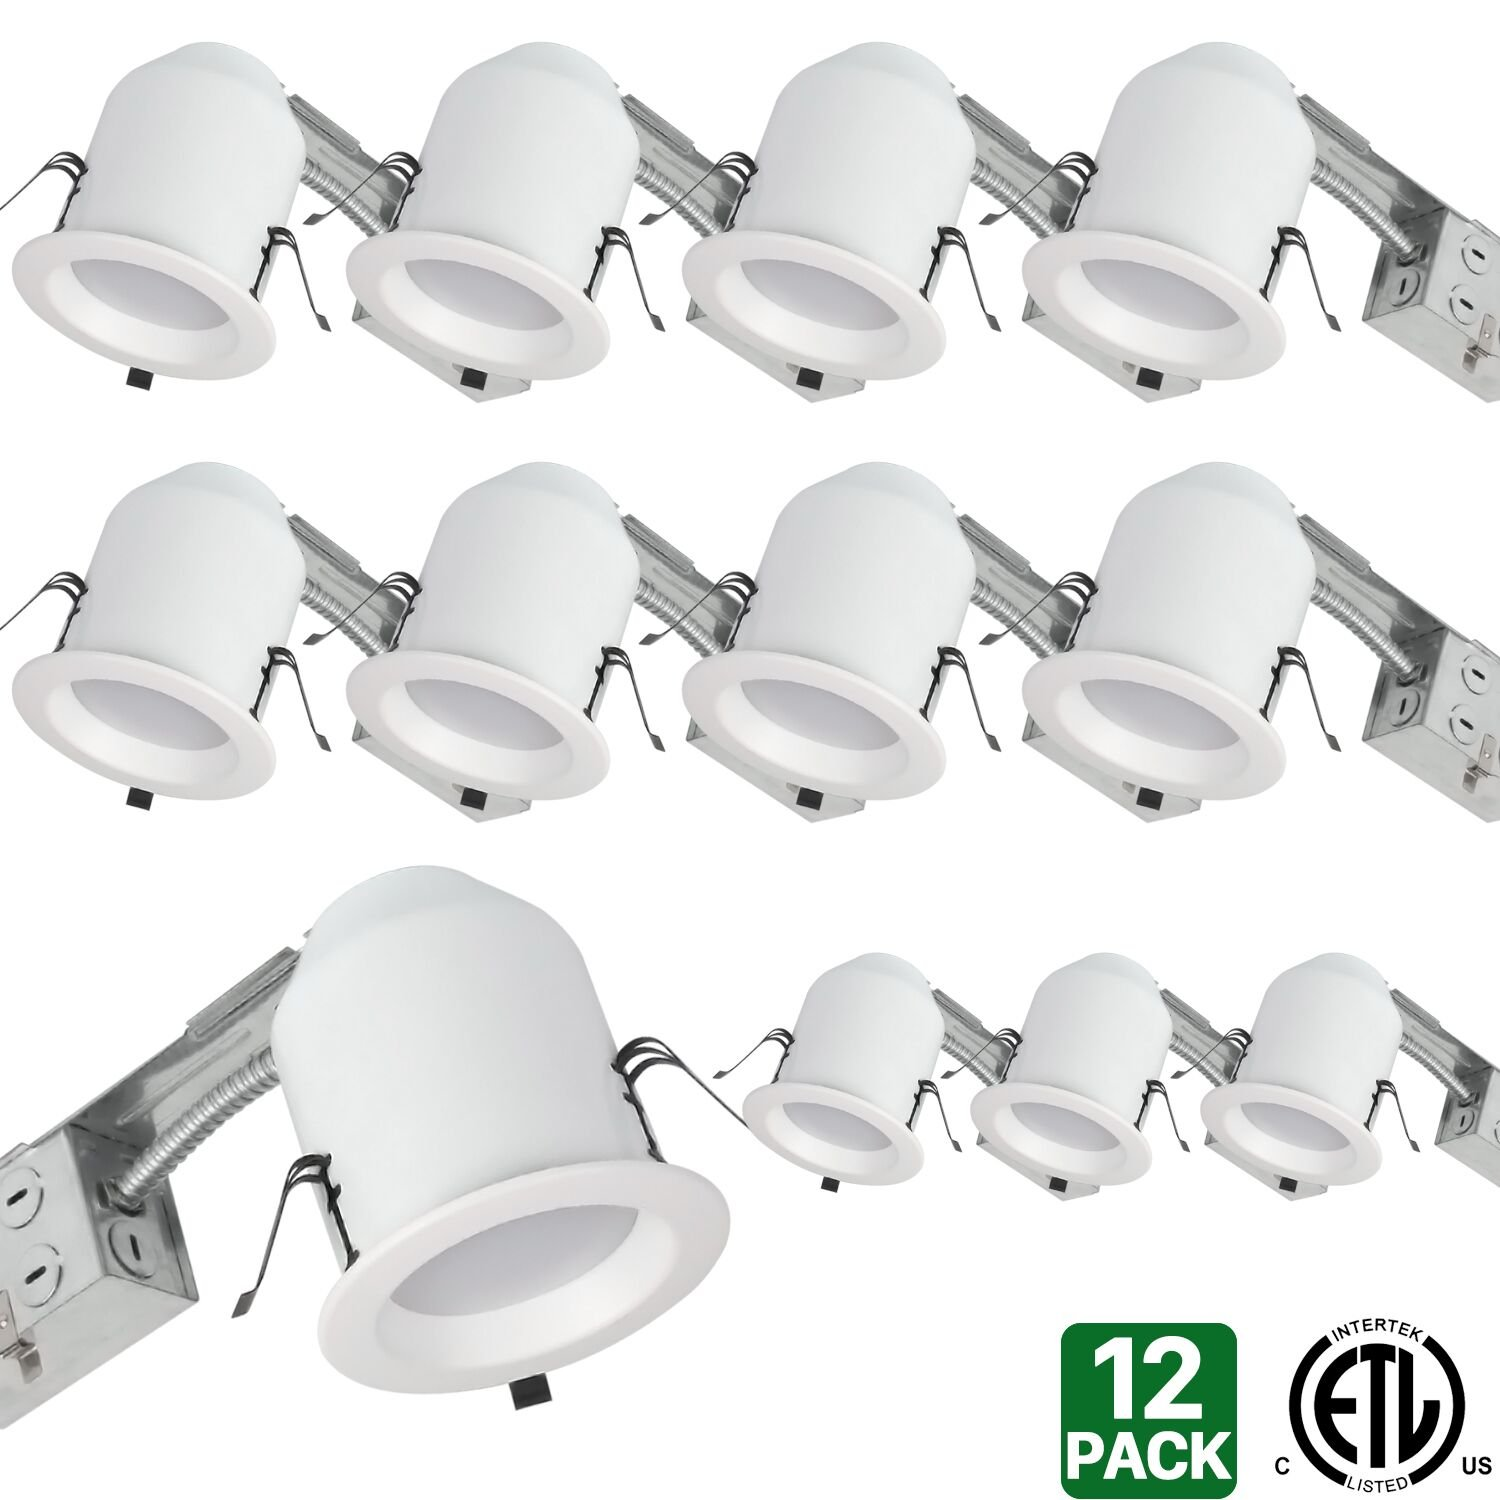 Hykolity 4 white led remodel recessed lighting kits ic rated hykolity 4 white led remodel recessed lighting kits ic rated remodel housing and dimmable led downlight damp rated 10w 700lm 3000k warm white pack of 12 aloadofball Images